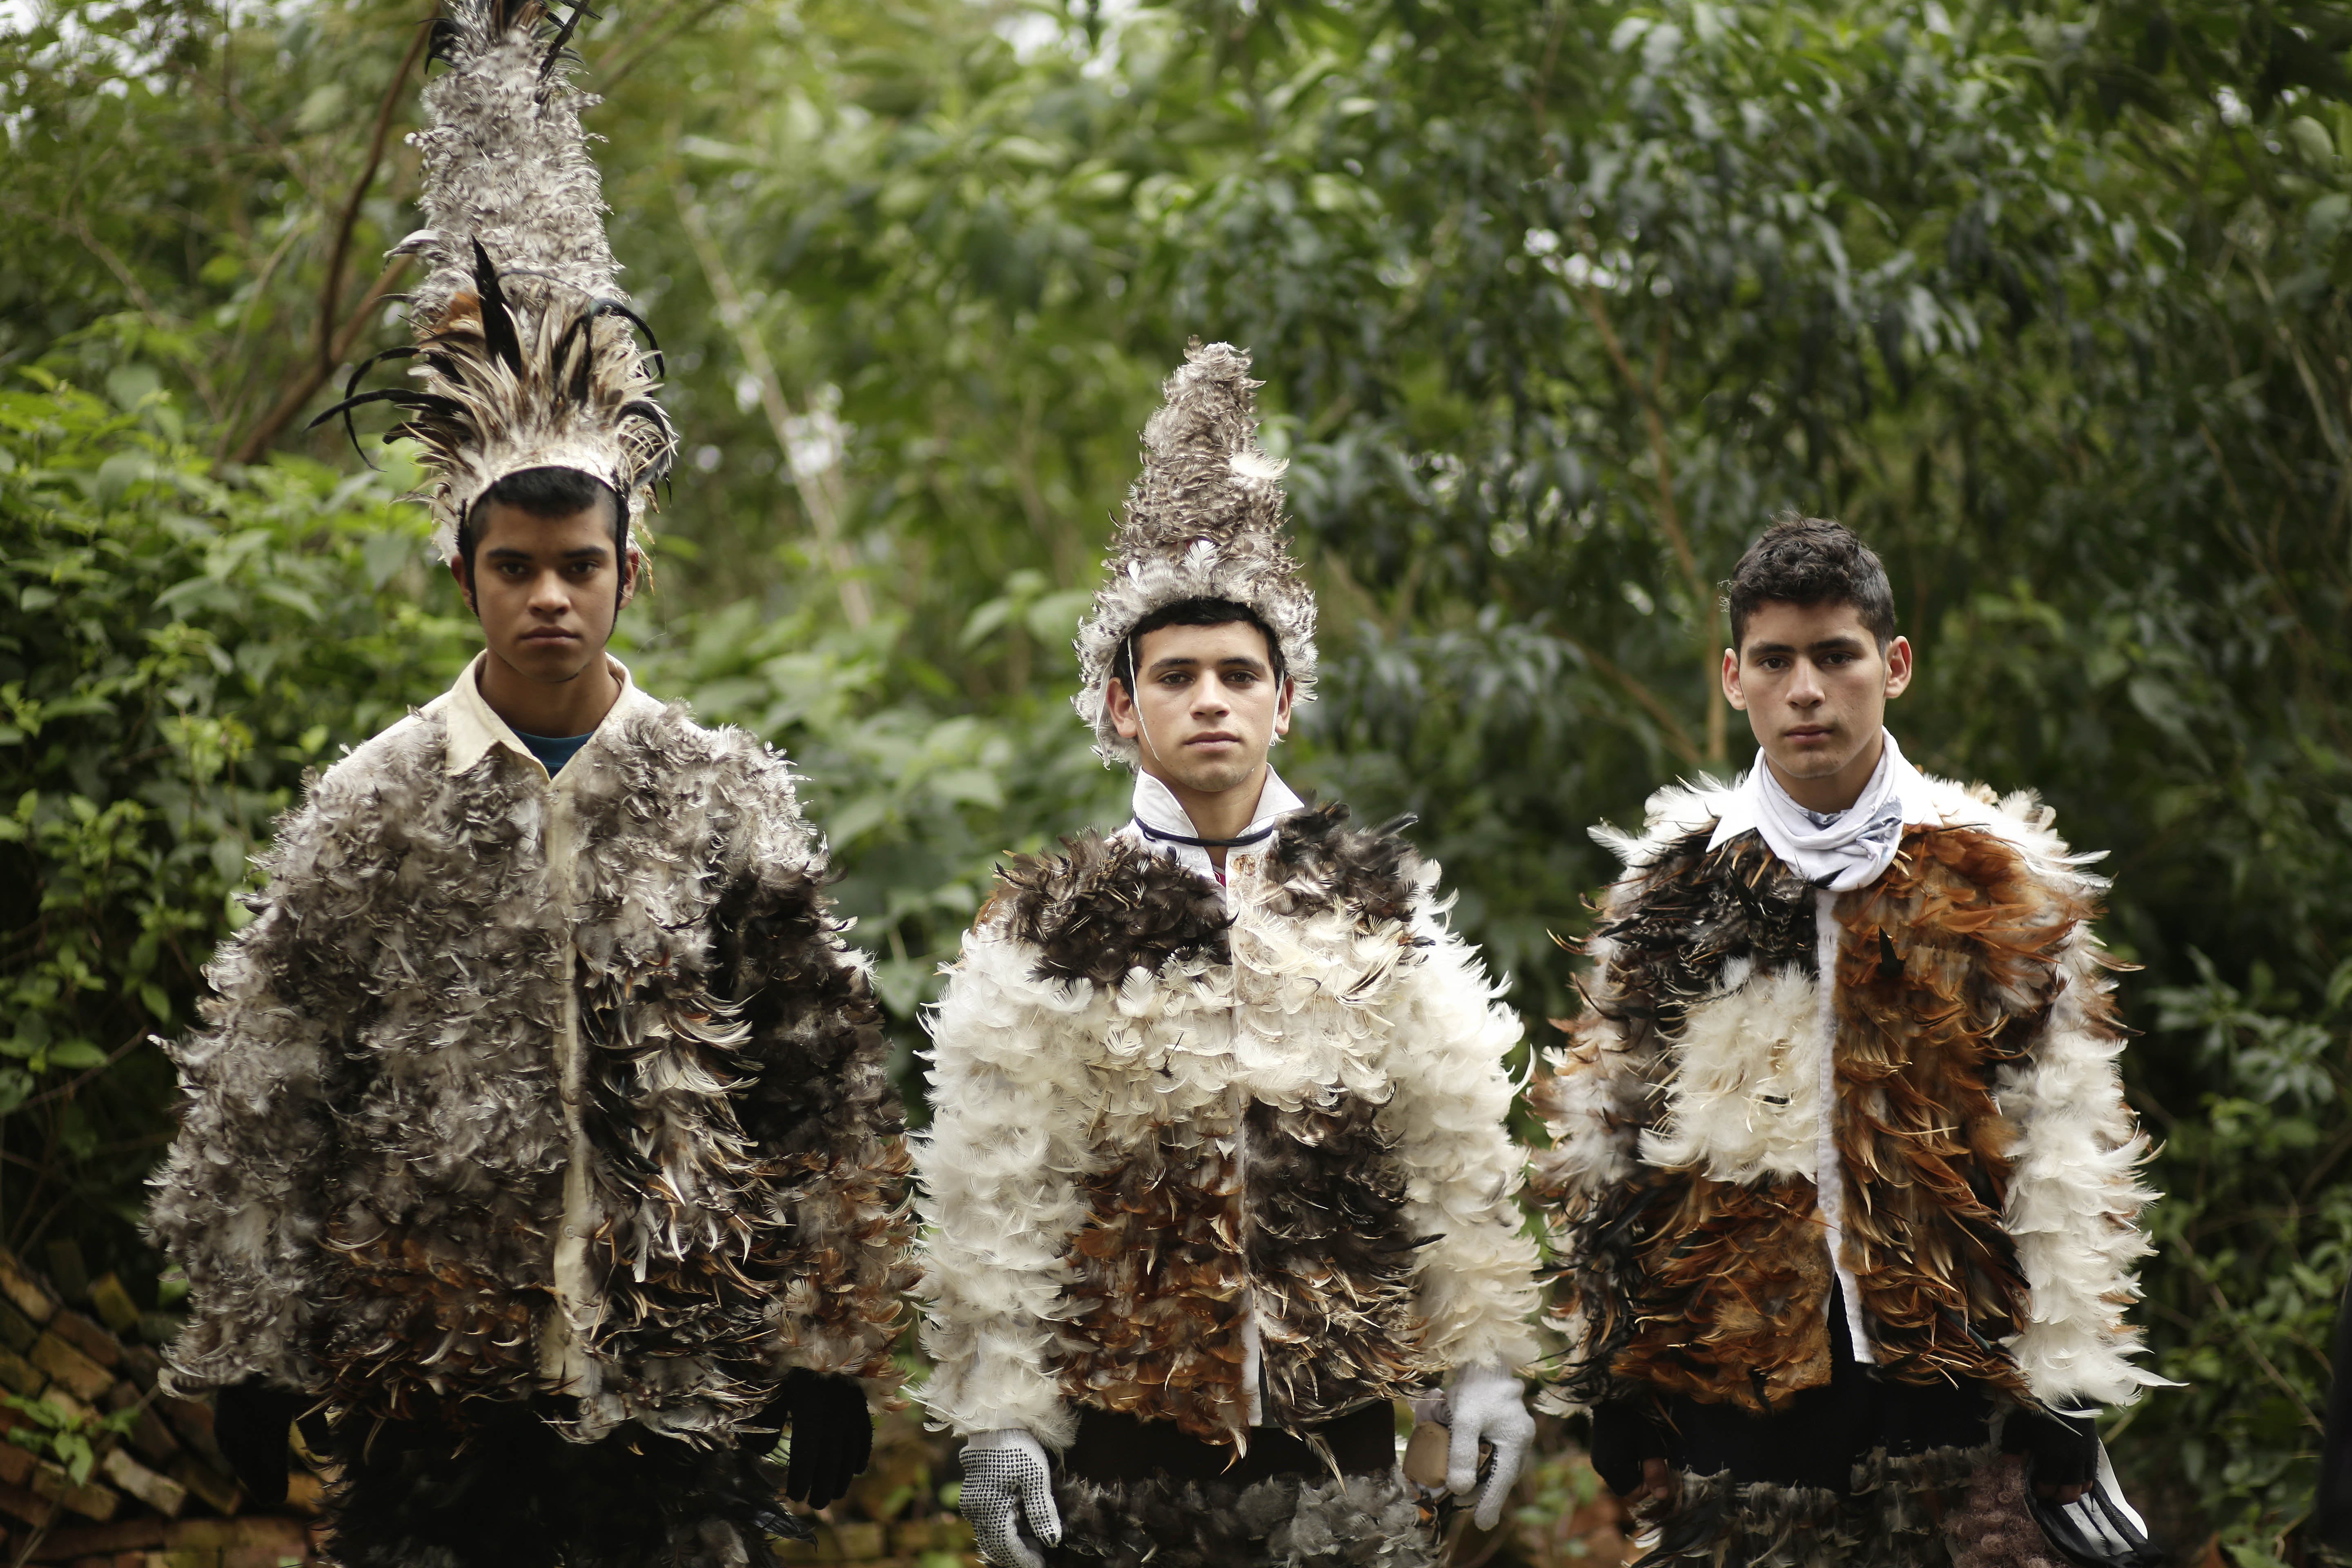 paraguay feather festival dressing in feathers to honor